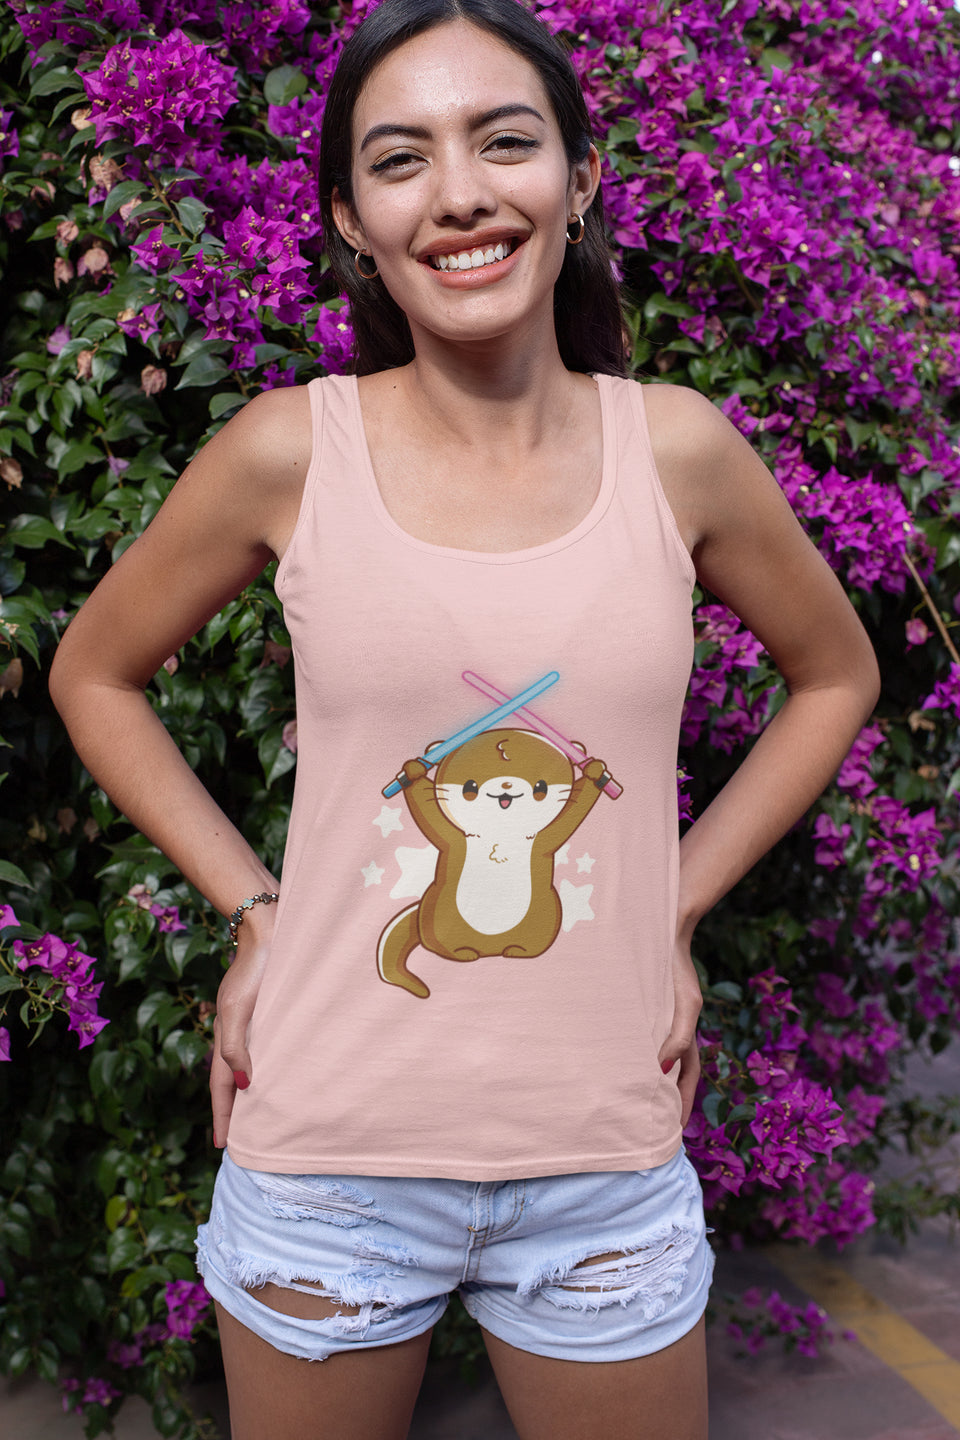 Otterly Adorable Racerback Tank